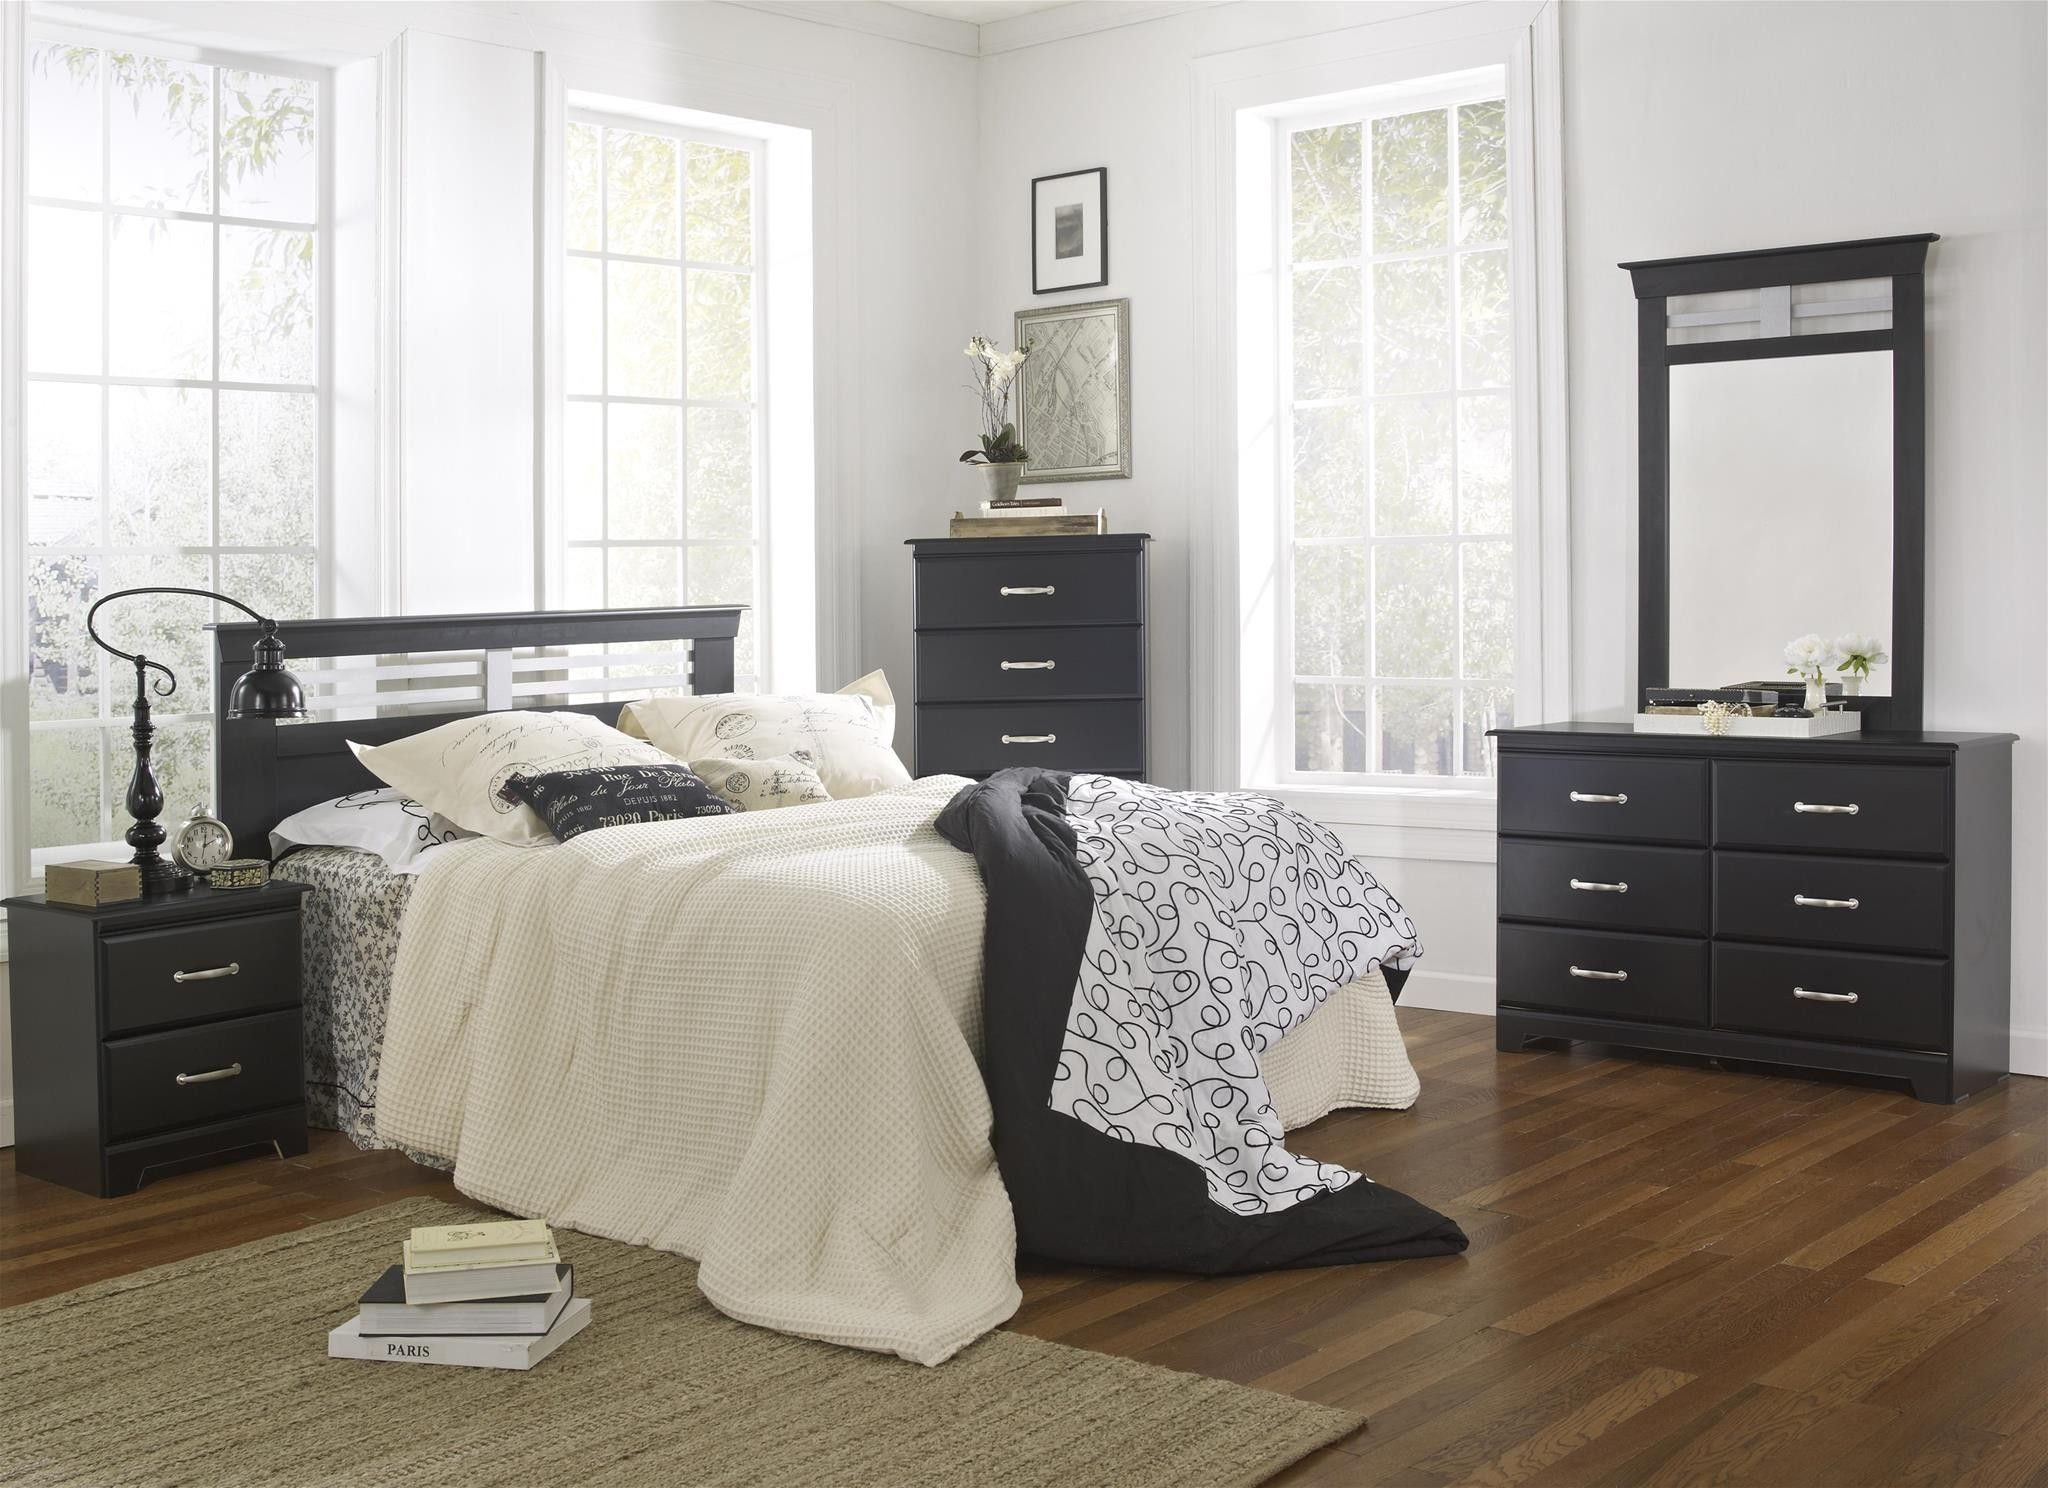 image cassic industrial bedroom furniture. Traditional With An Industrial Twist. Finished In Classic Black Brushed Silver Hardware And Trim · Cheap Bedroom SetsWood Image Cassic Furniture O